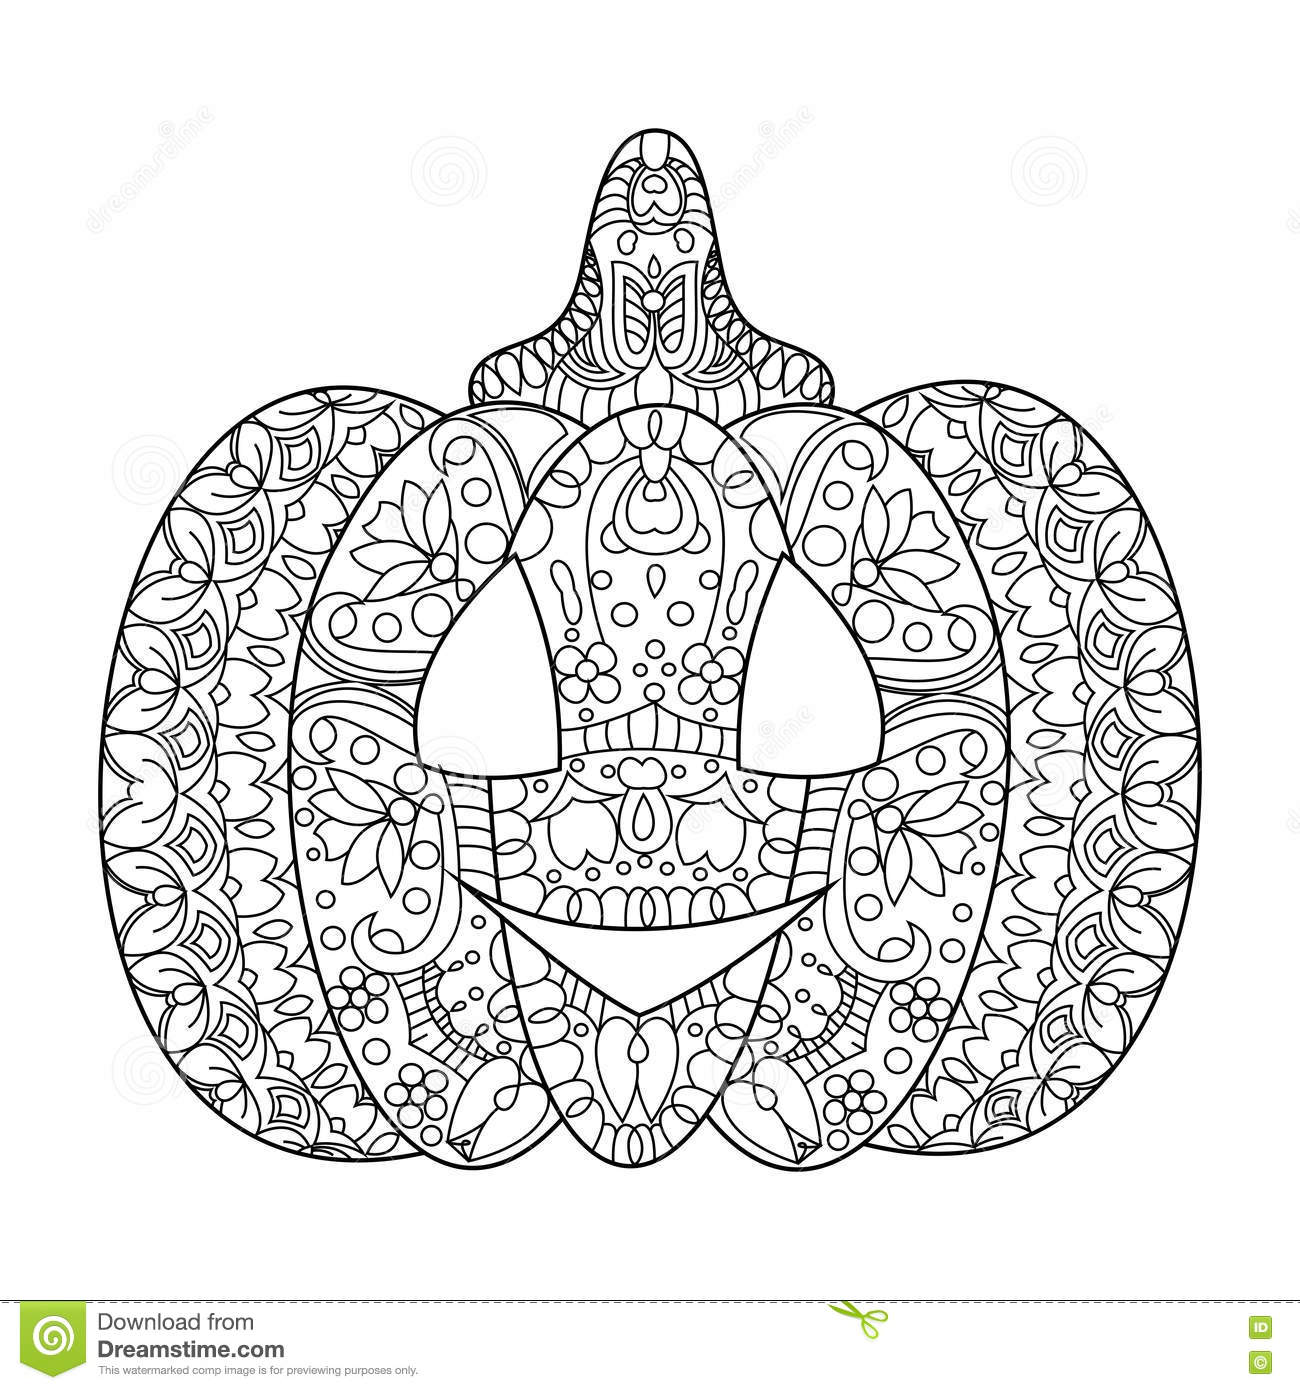 Emoji pumpkin carving stencils sketch coloring page for Pumpkin coloring pages for adults